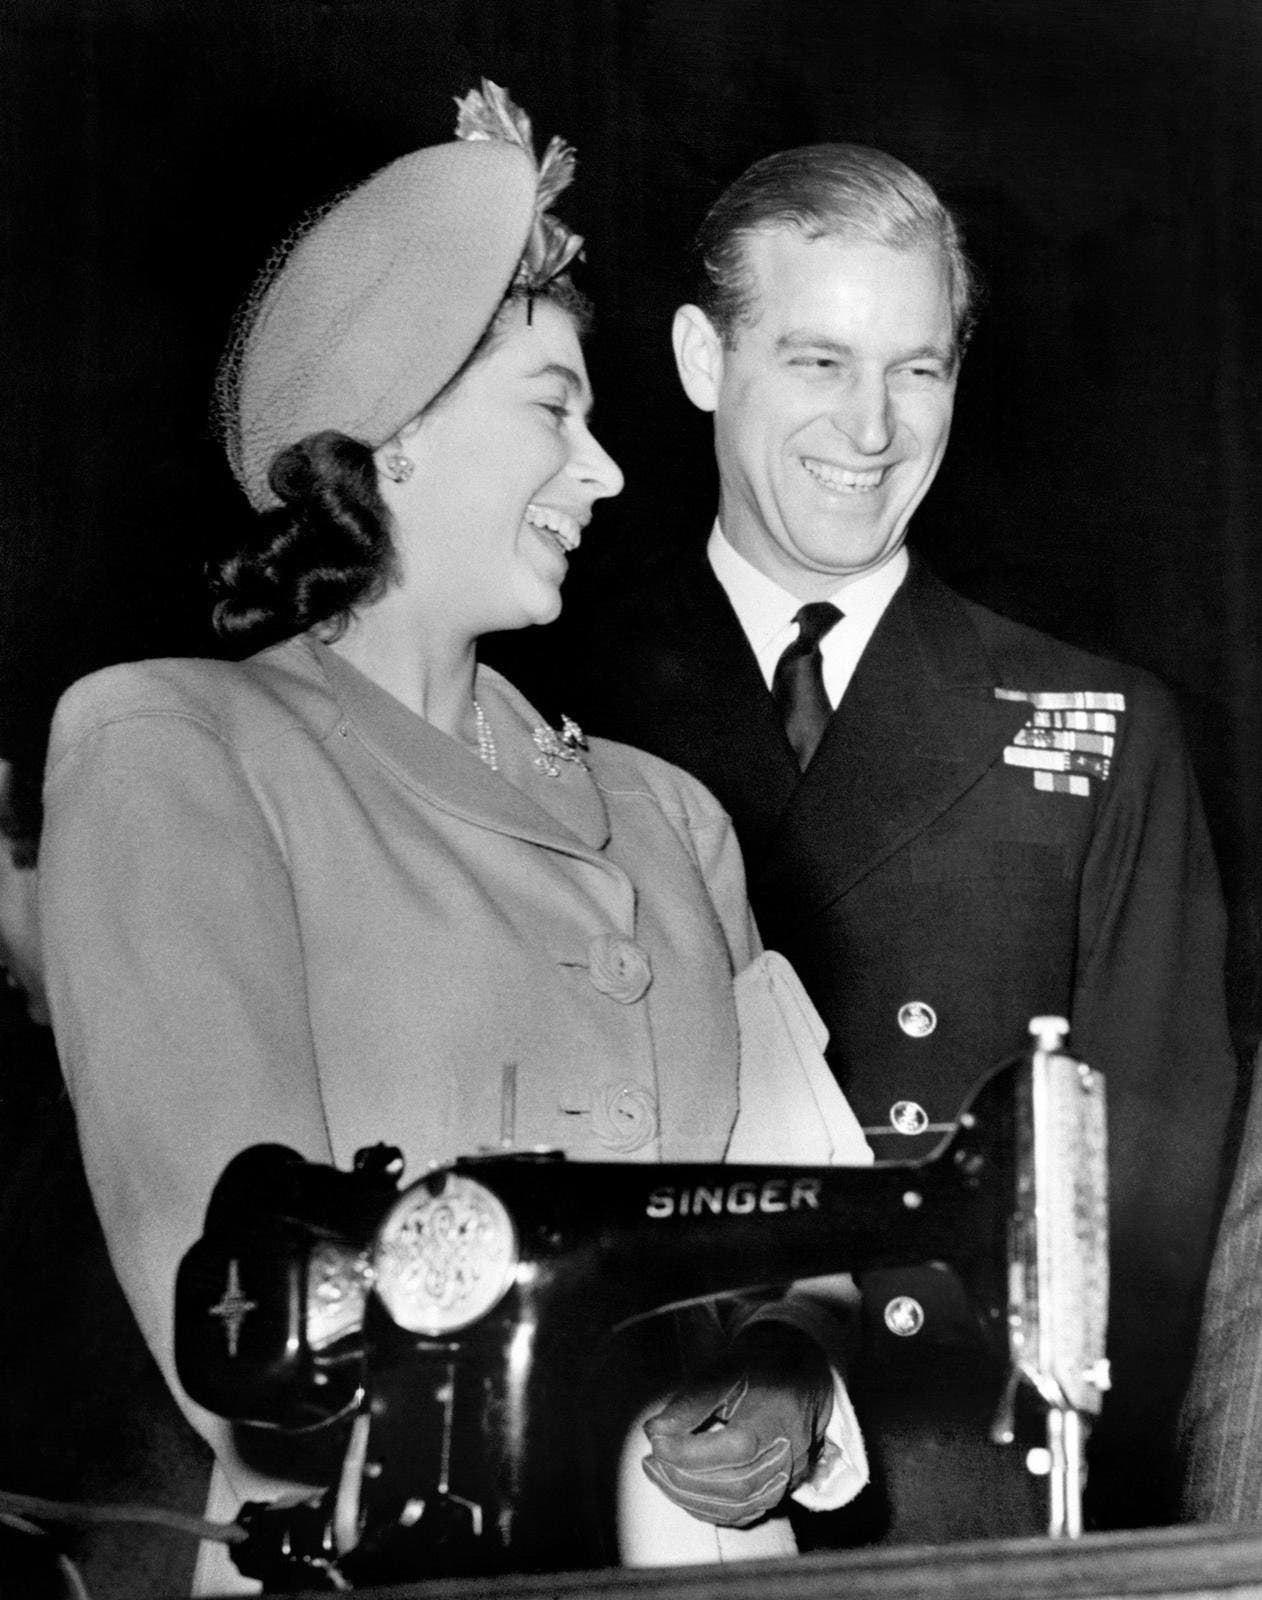 Prince Philip and Queen Elizabeth both smiling